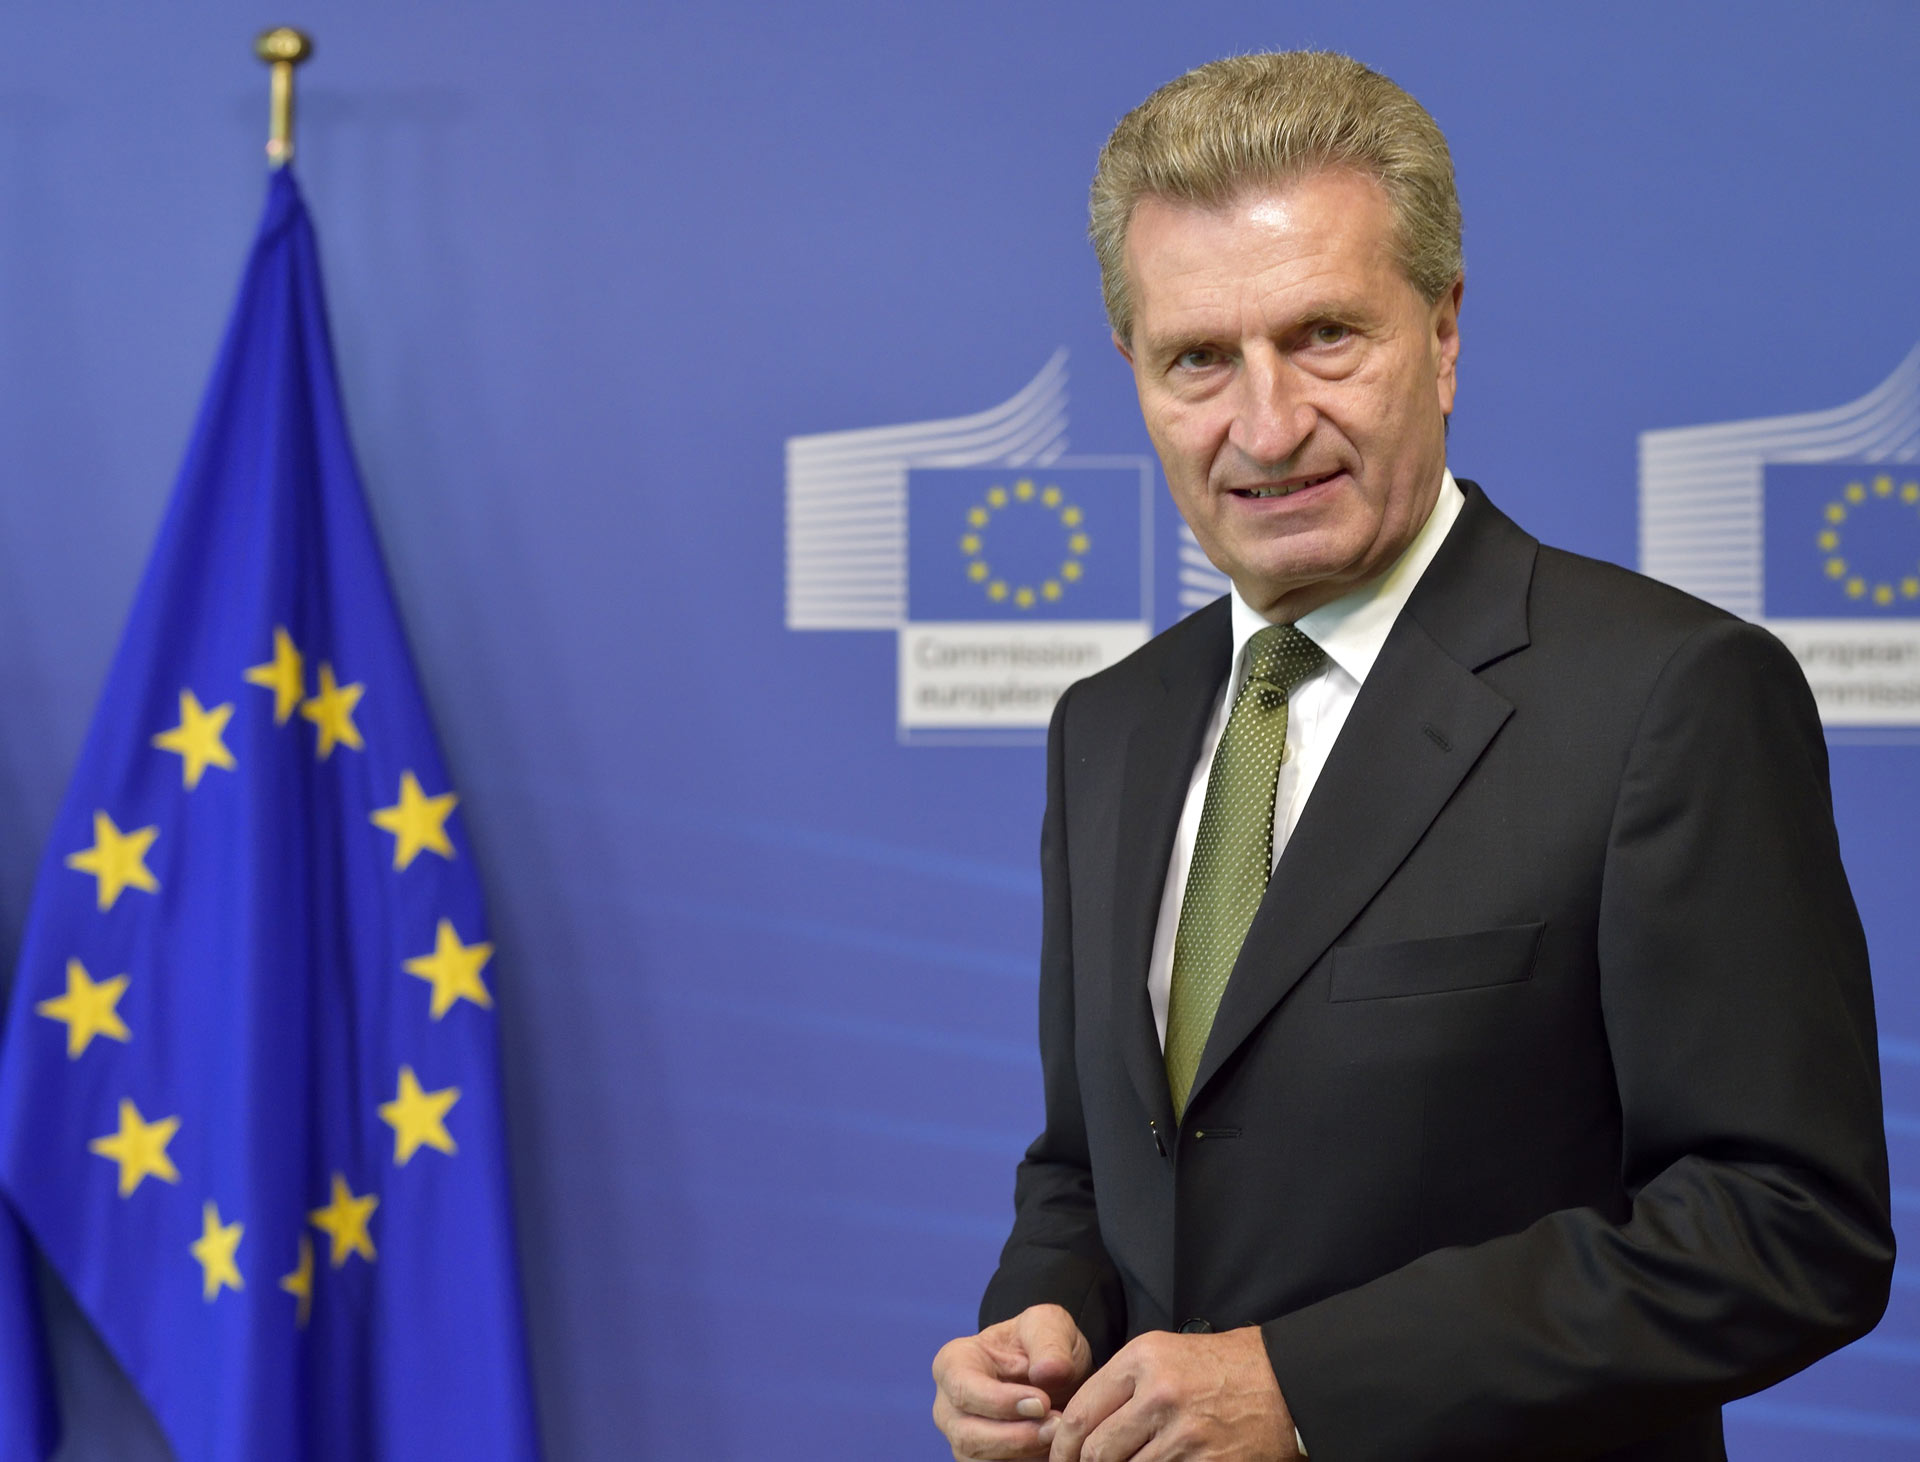 EC-commissaris Günther Oettinger (Digitale Economie) | Georges Boulougouris / Europese Unie